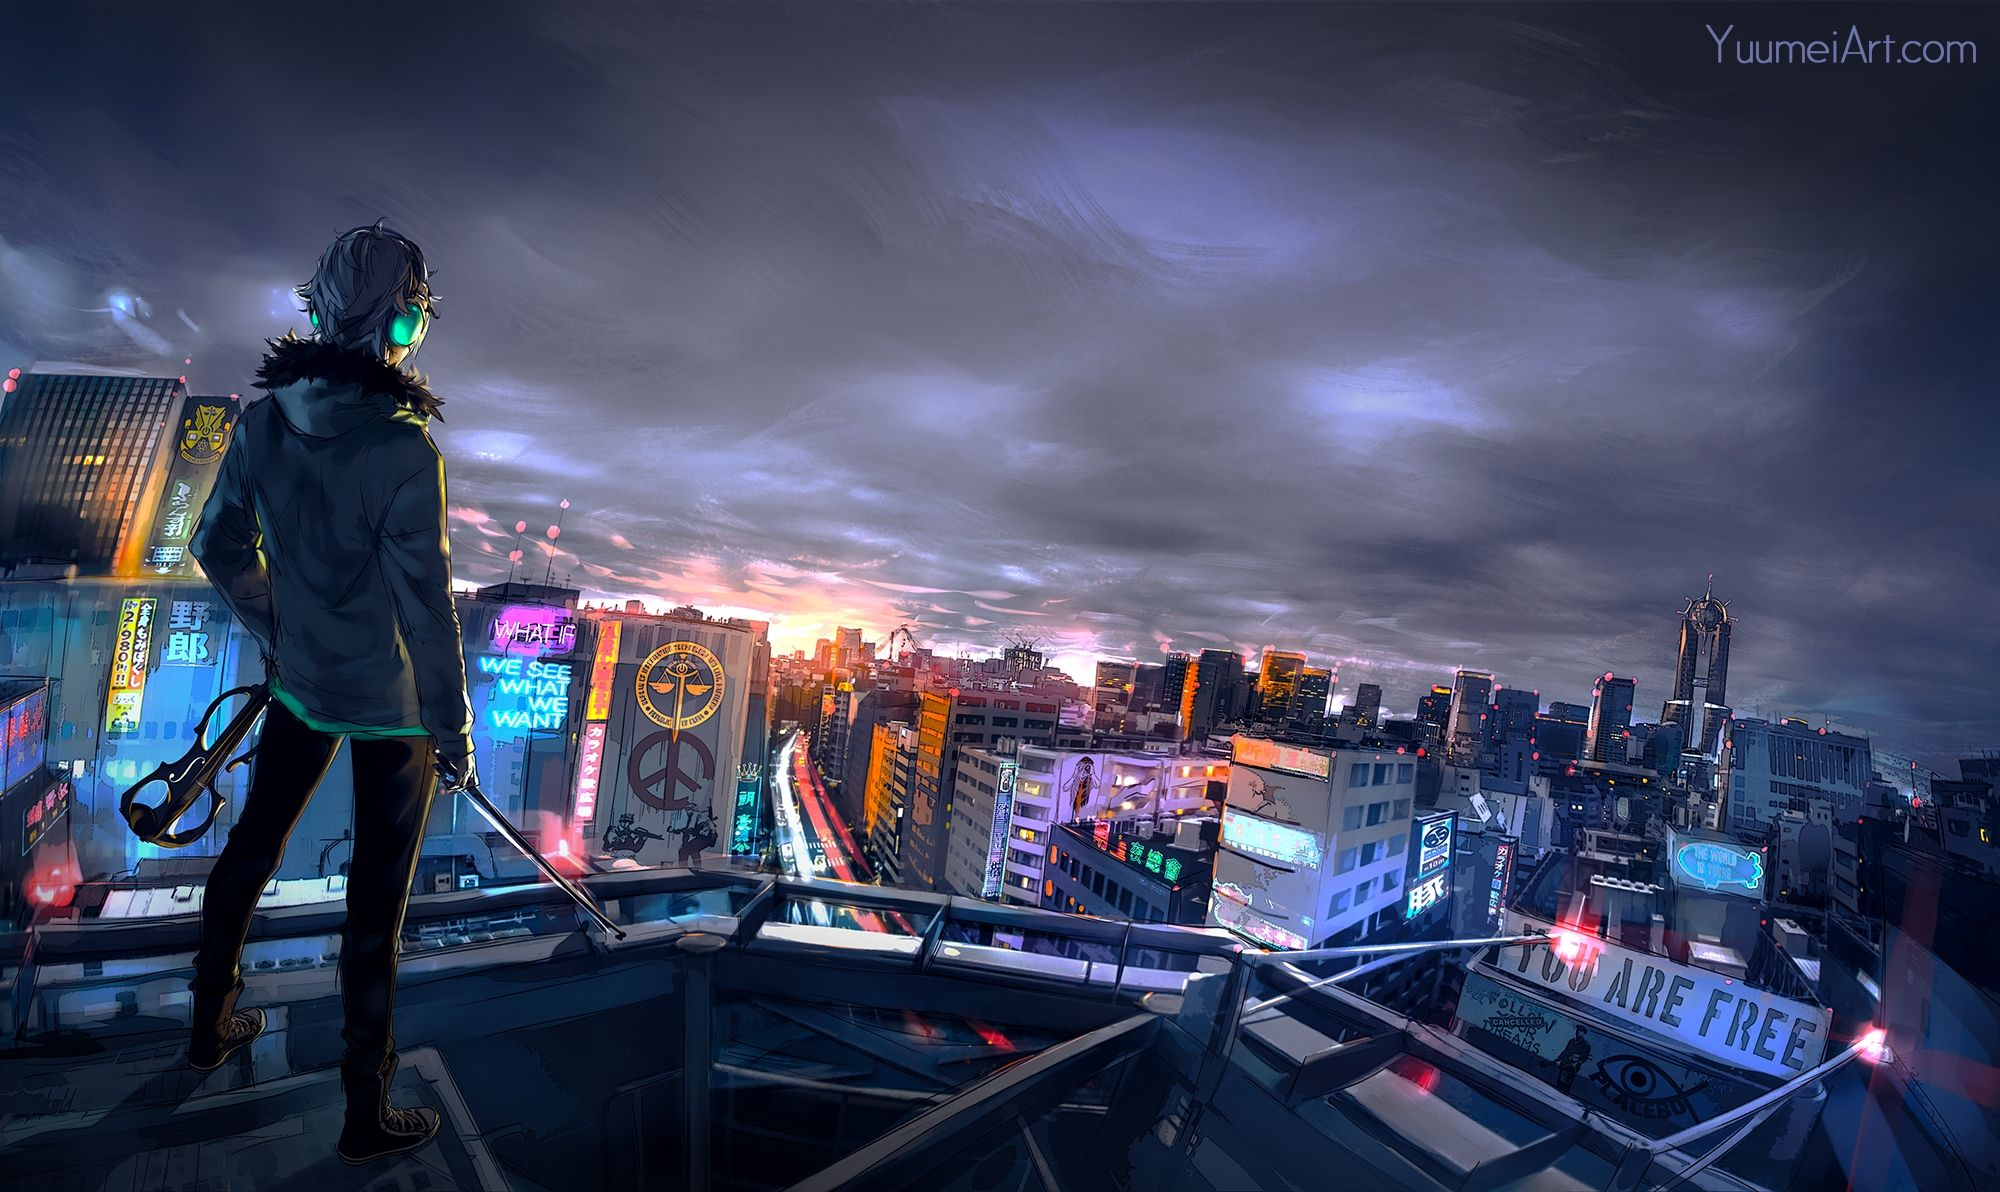 Anime Boy Hoodie Night Cityscape Rooftop Sword Fisheye Placebo Cityscape Wallpaper Wallpaper Pc Anime